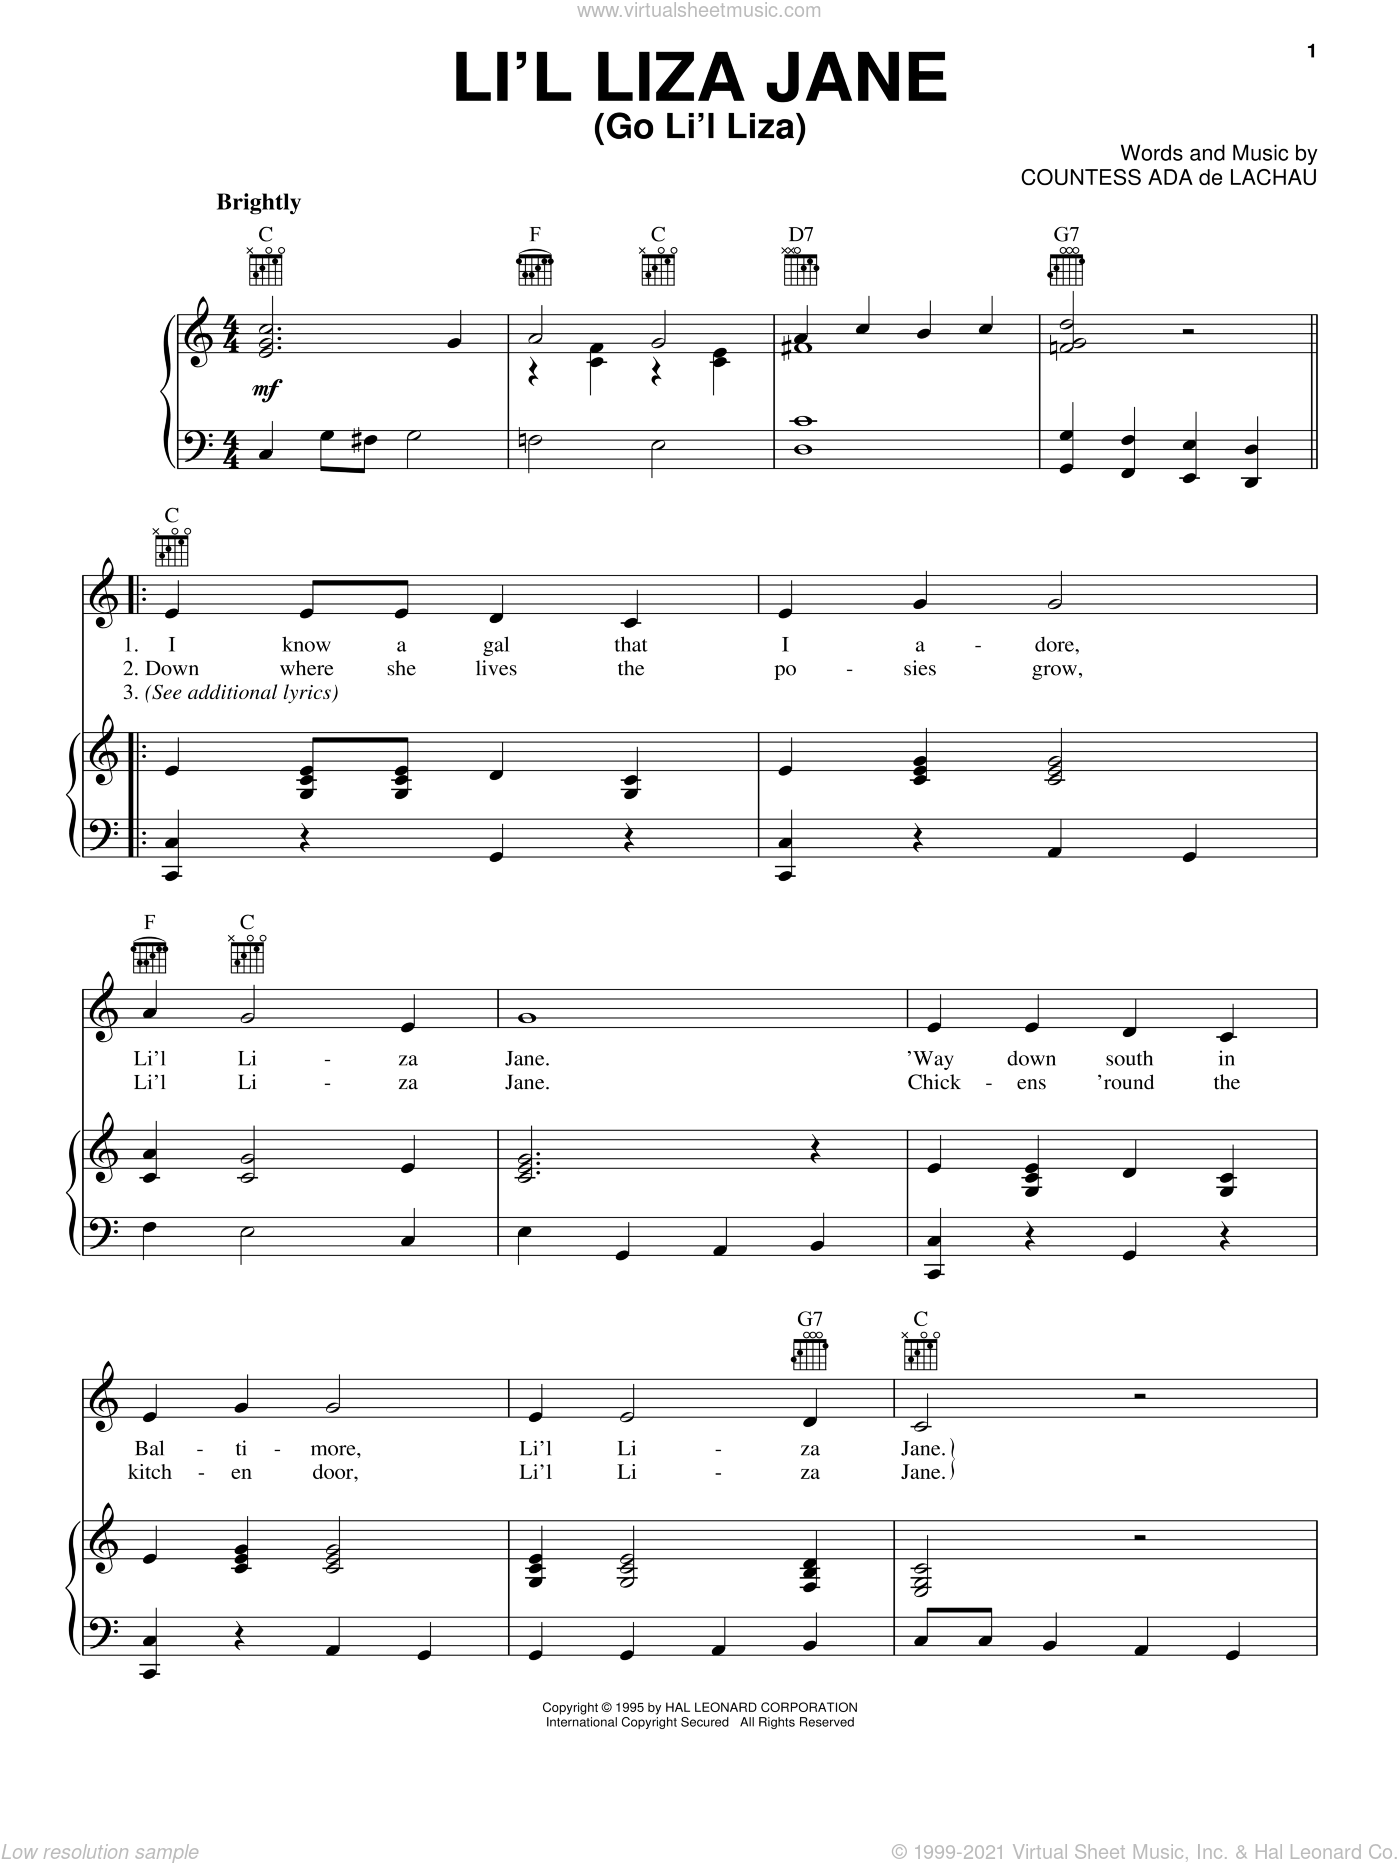 Li'l Liza Jane (Go Li'l Liza) sheet music for voice, piano or guitar by Countess Ada De Lachau, intermediate skill level